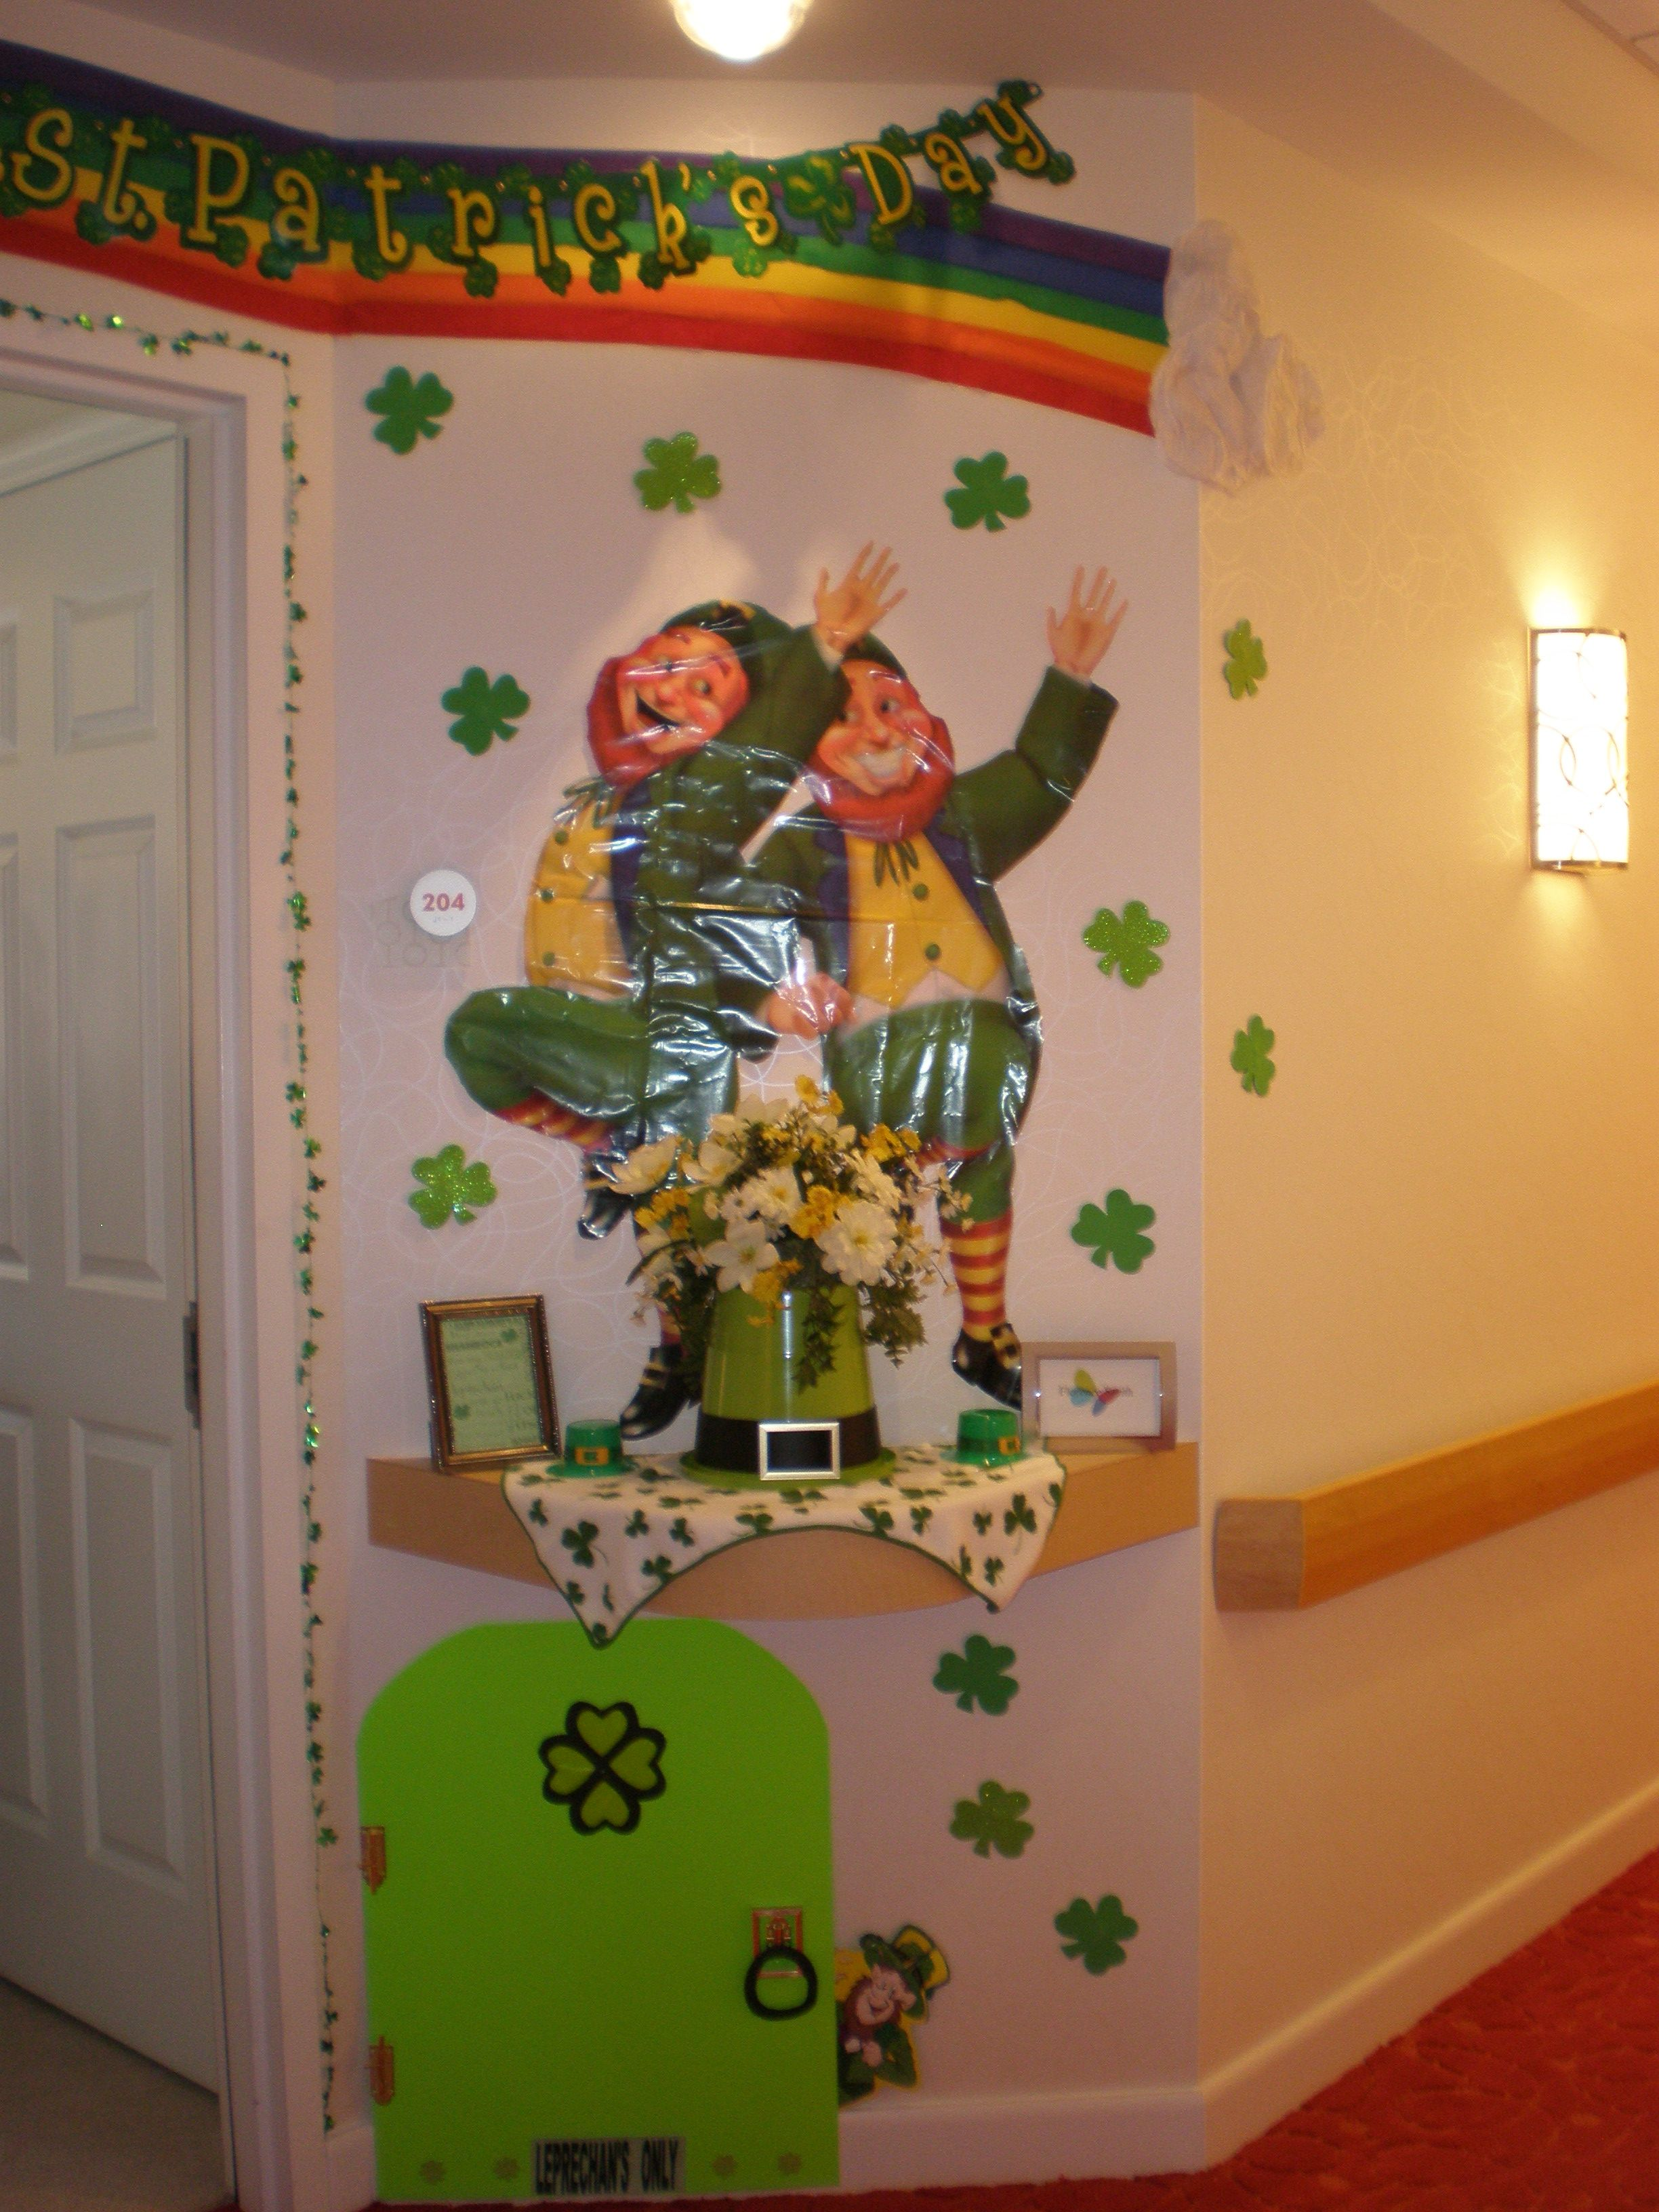 Saint patricks day decorations st patricksday pinterest for Decoration saint patrick